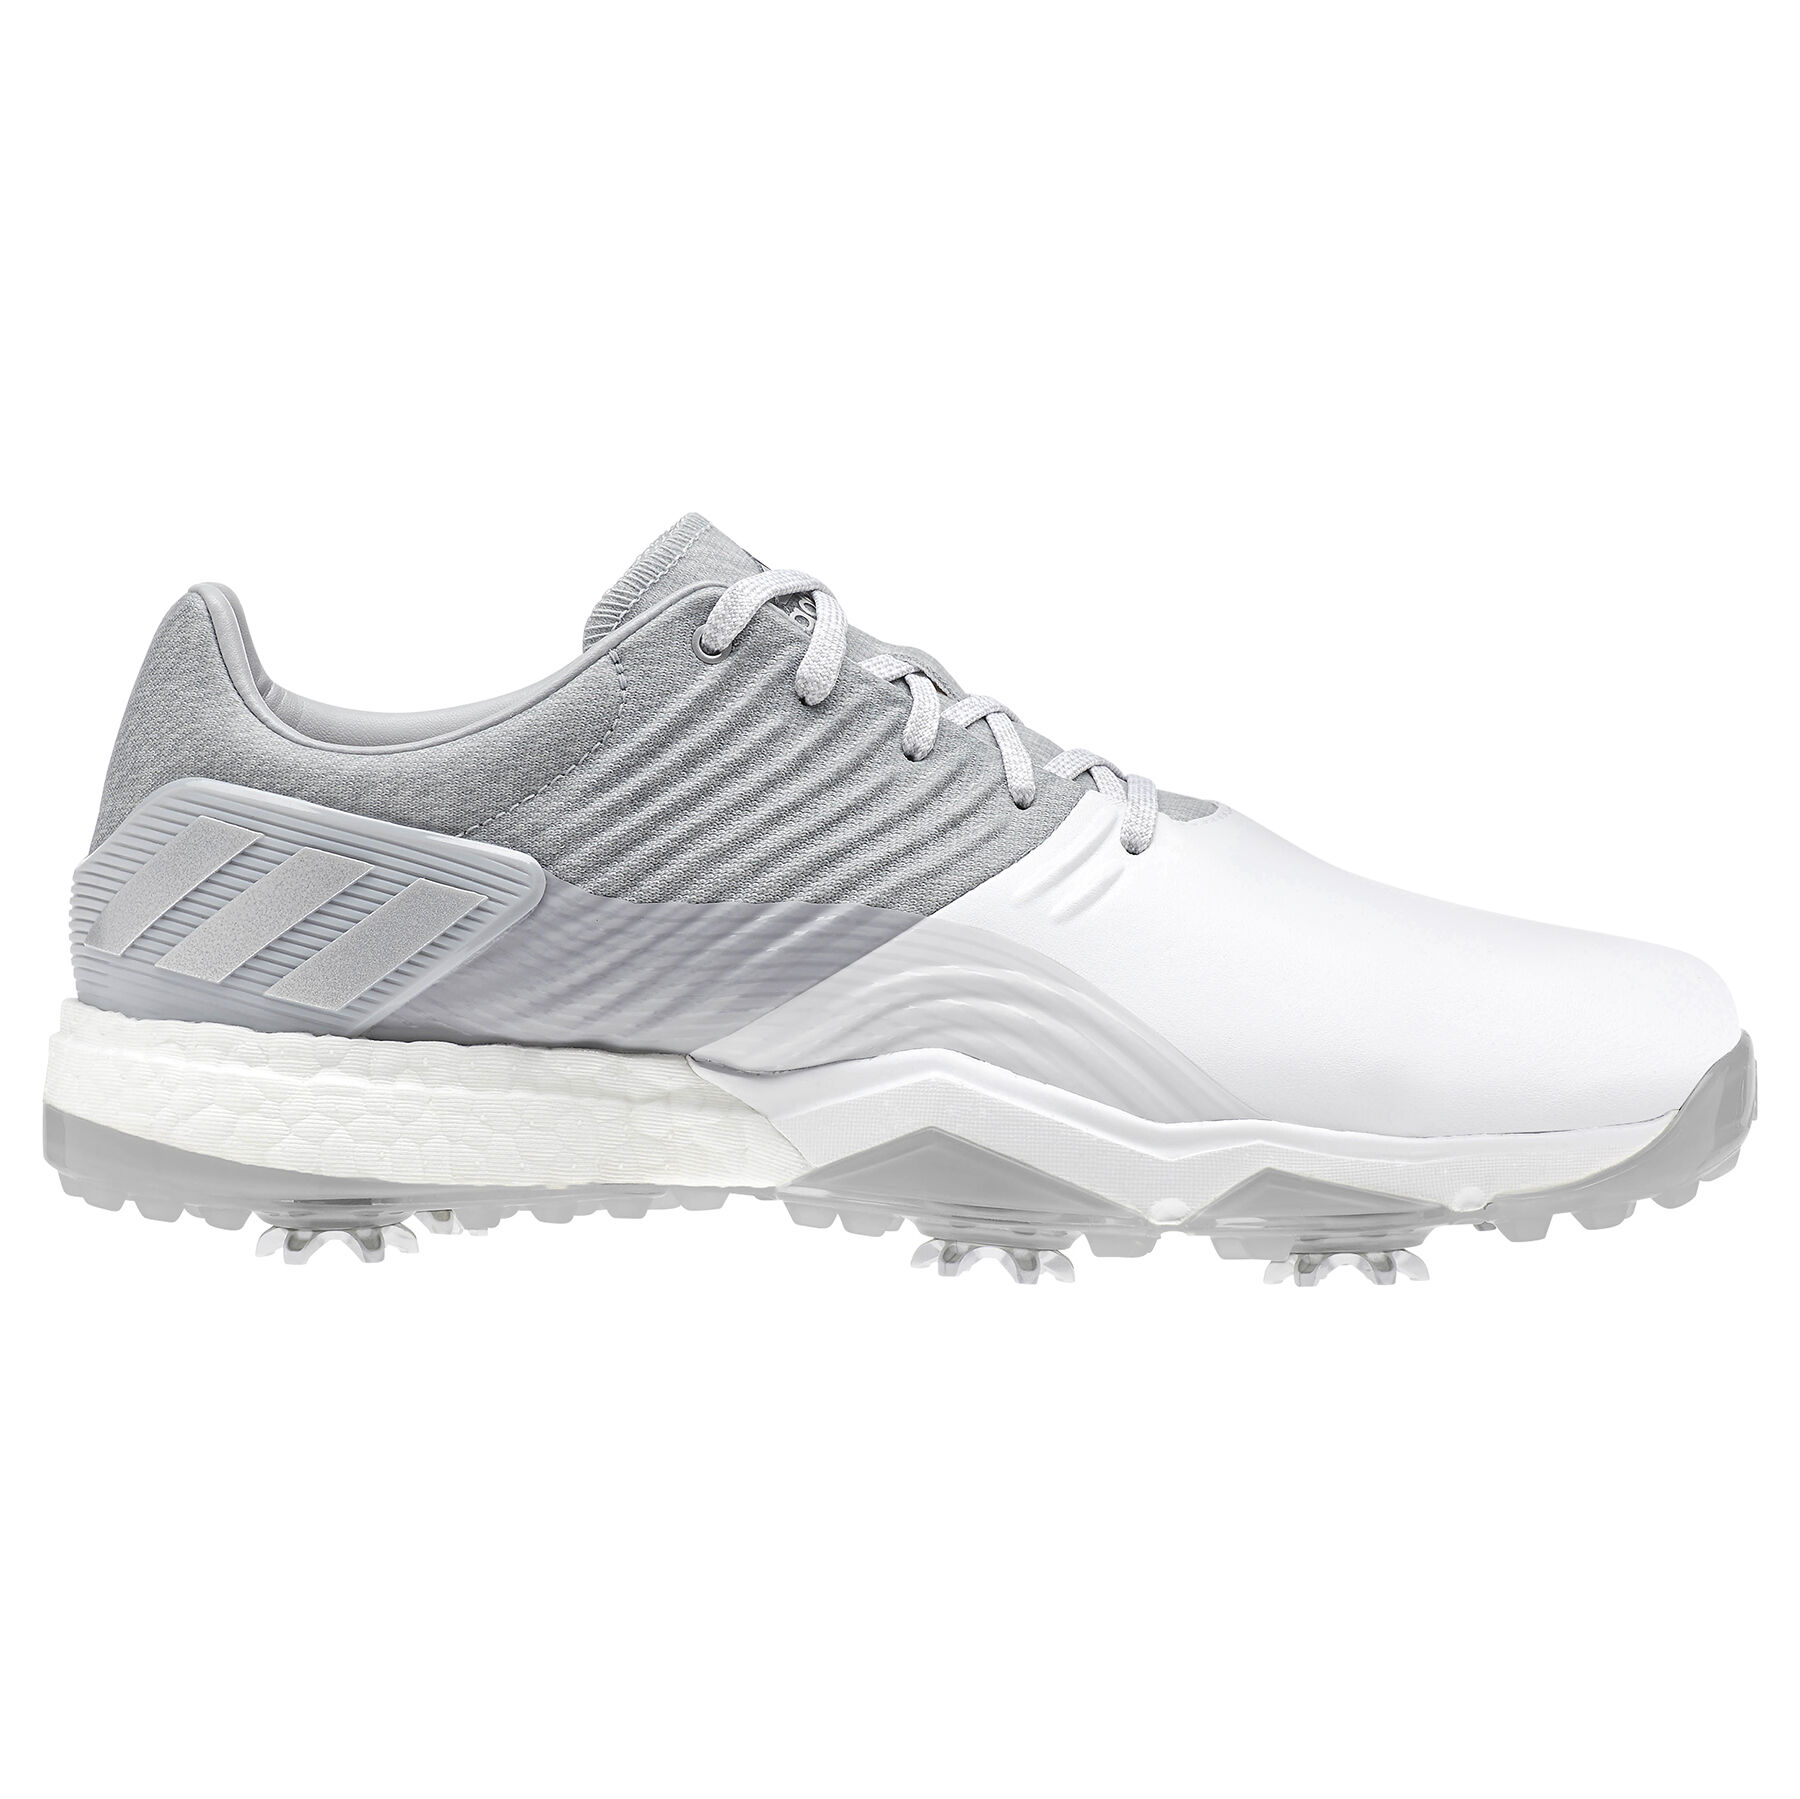 adidas golf adipower 4orged s shoes